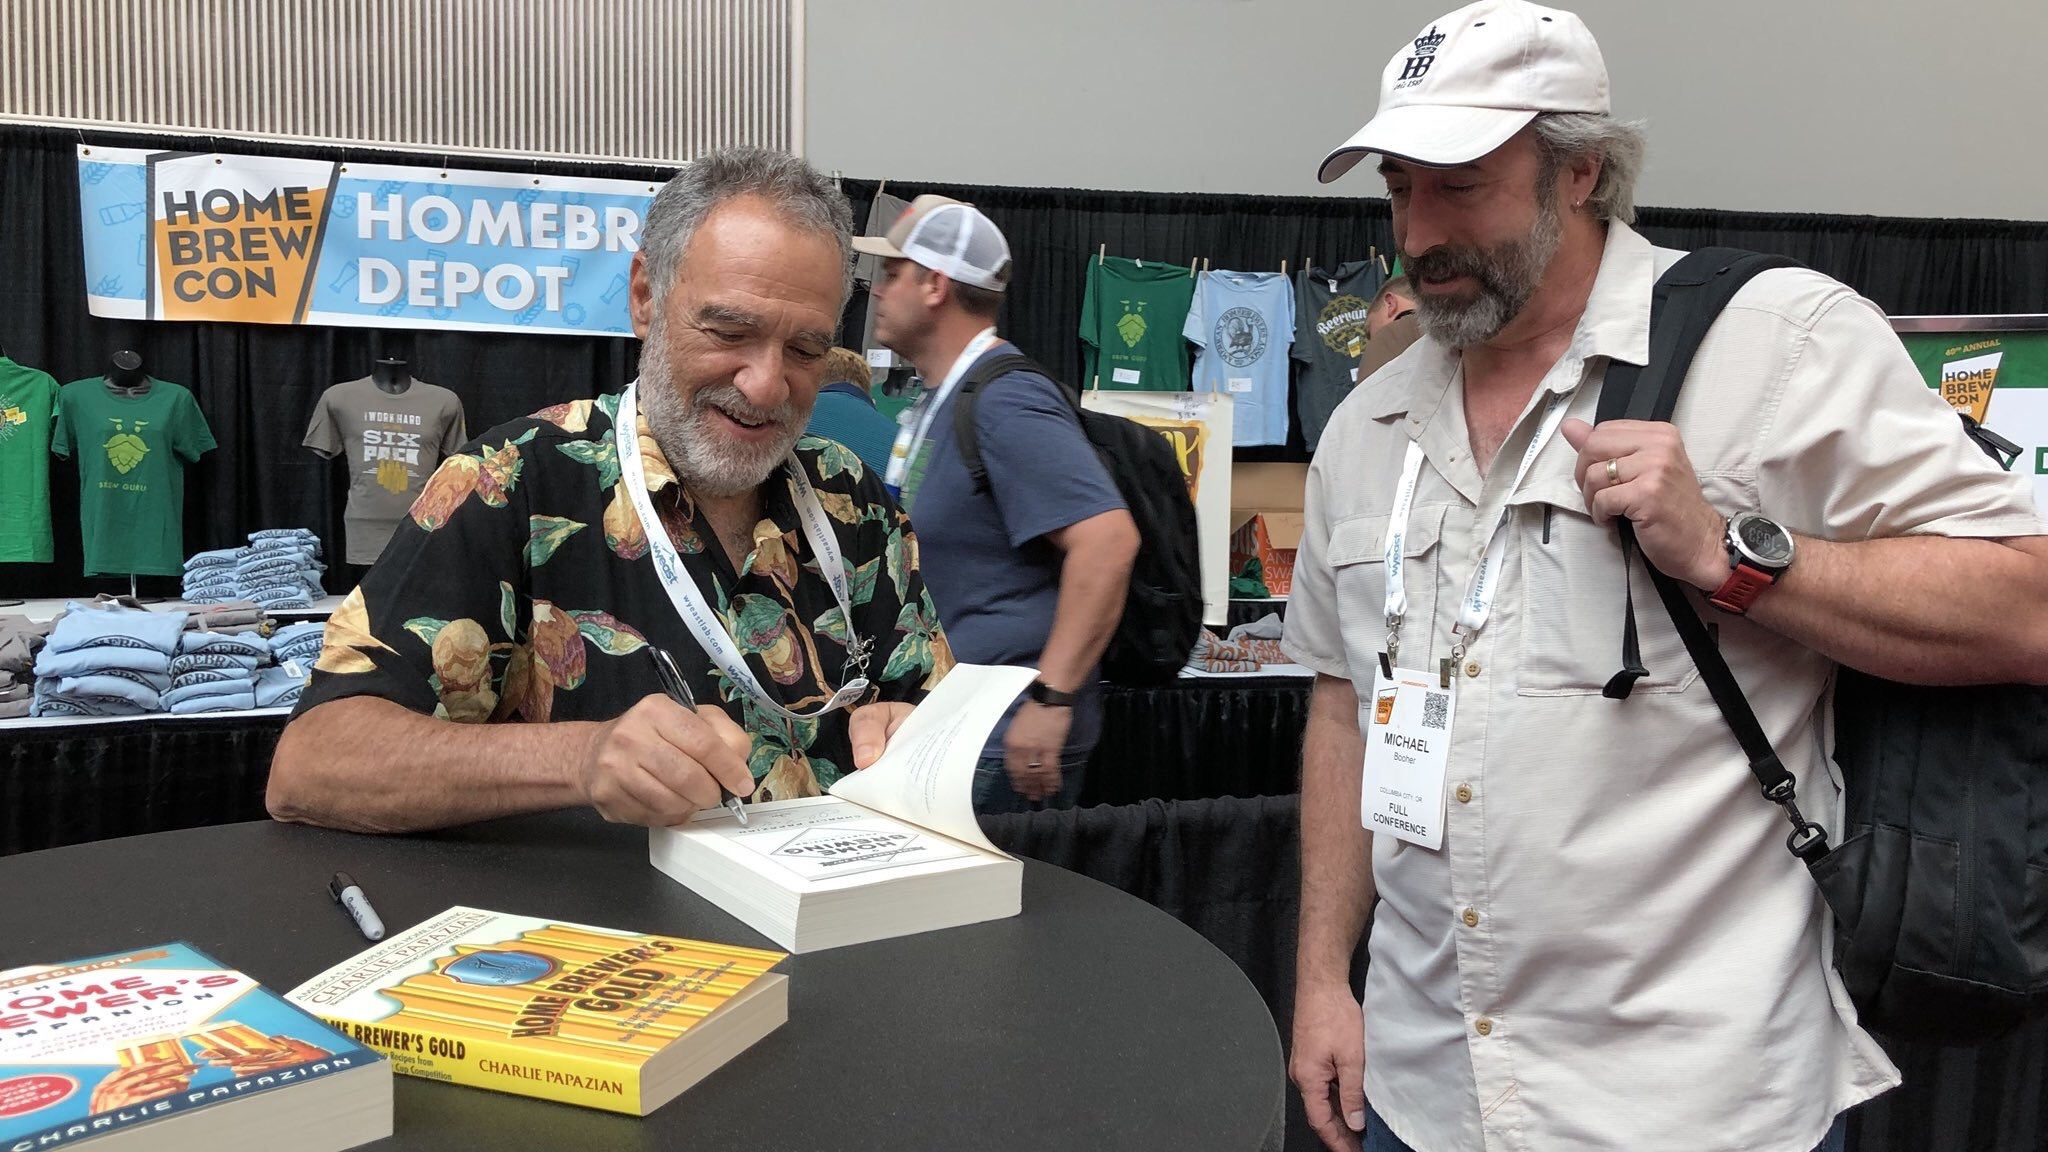 Homebrew Con came to Portland for its 40th year and I managed to catch the biggest celebrity (Charlie Papazian) signing books.